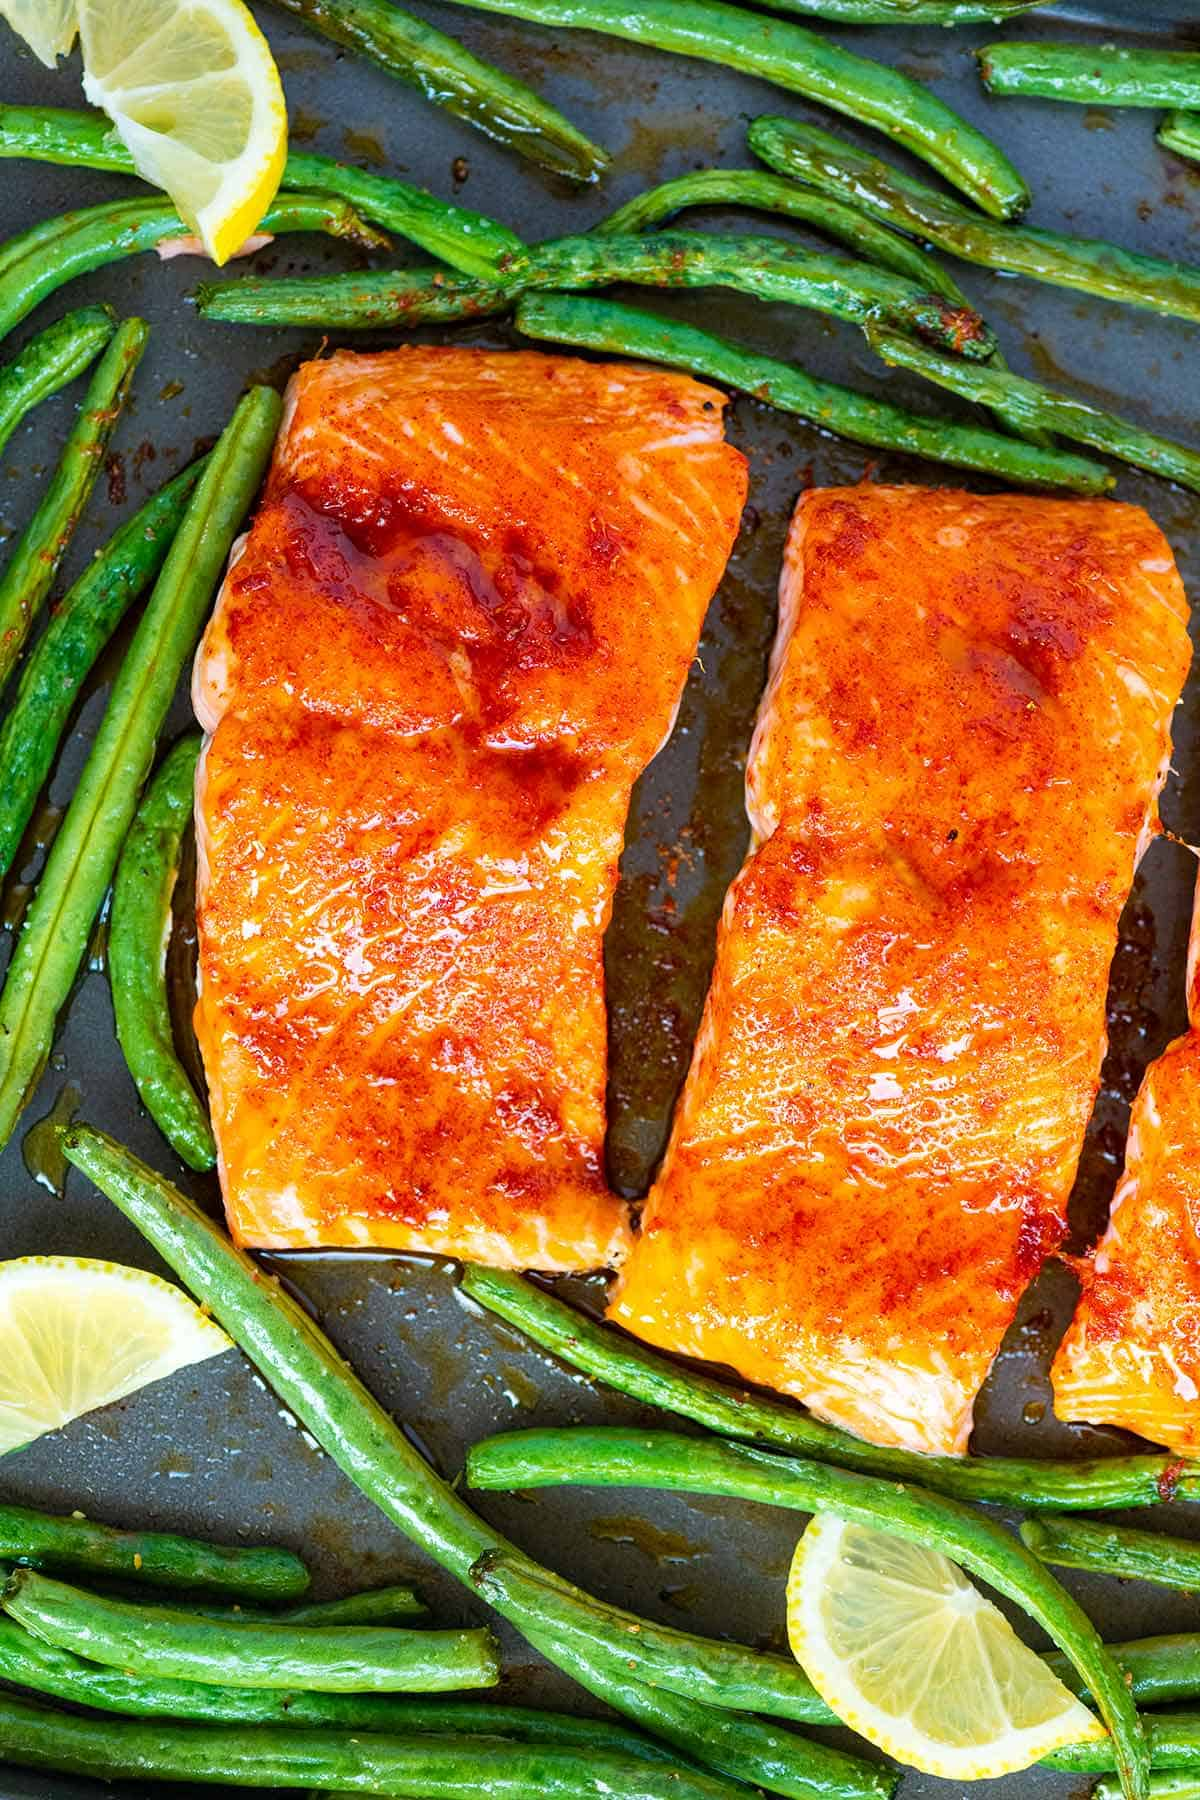 How to Make Easy, One-Pan Baked Salmon and Veggies